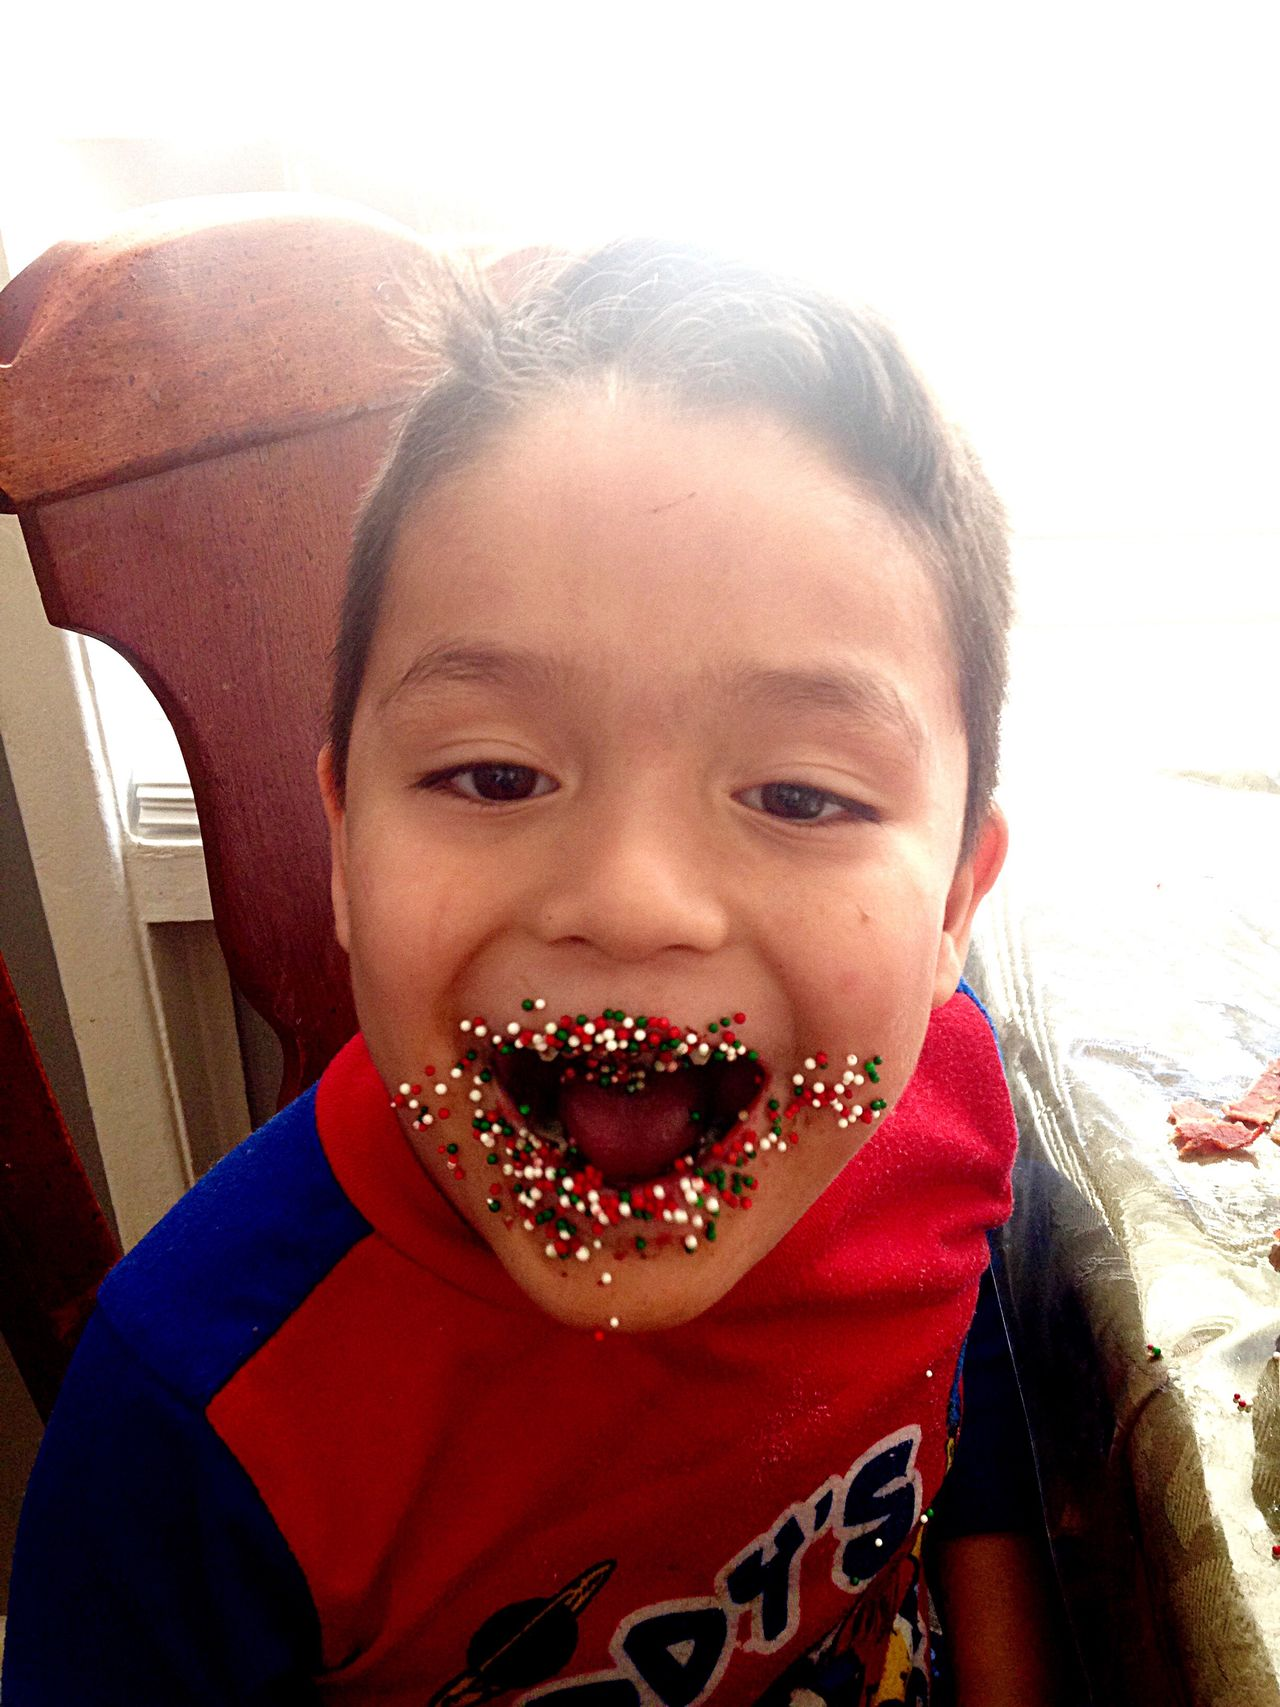 Candy mouth Looking At Camera Portrait Front View One Person Real People Childhood Girls Cheerful Close-up Day Indoors  People Gap Toothed Candy Candy Moments Sprinkles Boy Child Smile Childhood Memories Pajamas Breakfast Joy EyeEmNewHere EyeEmNewHere